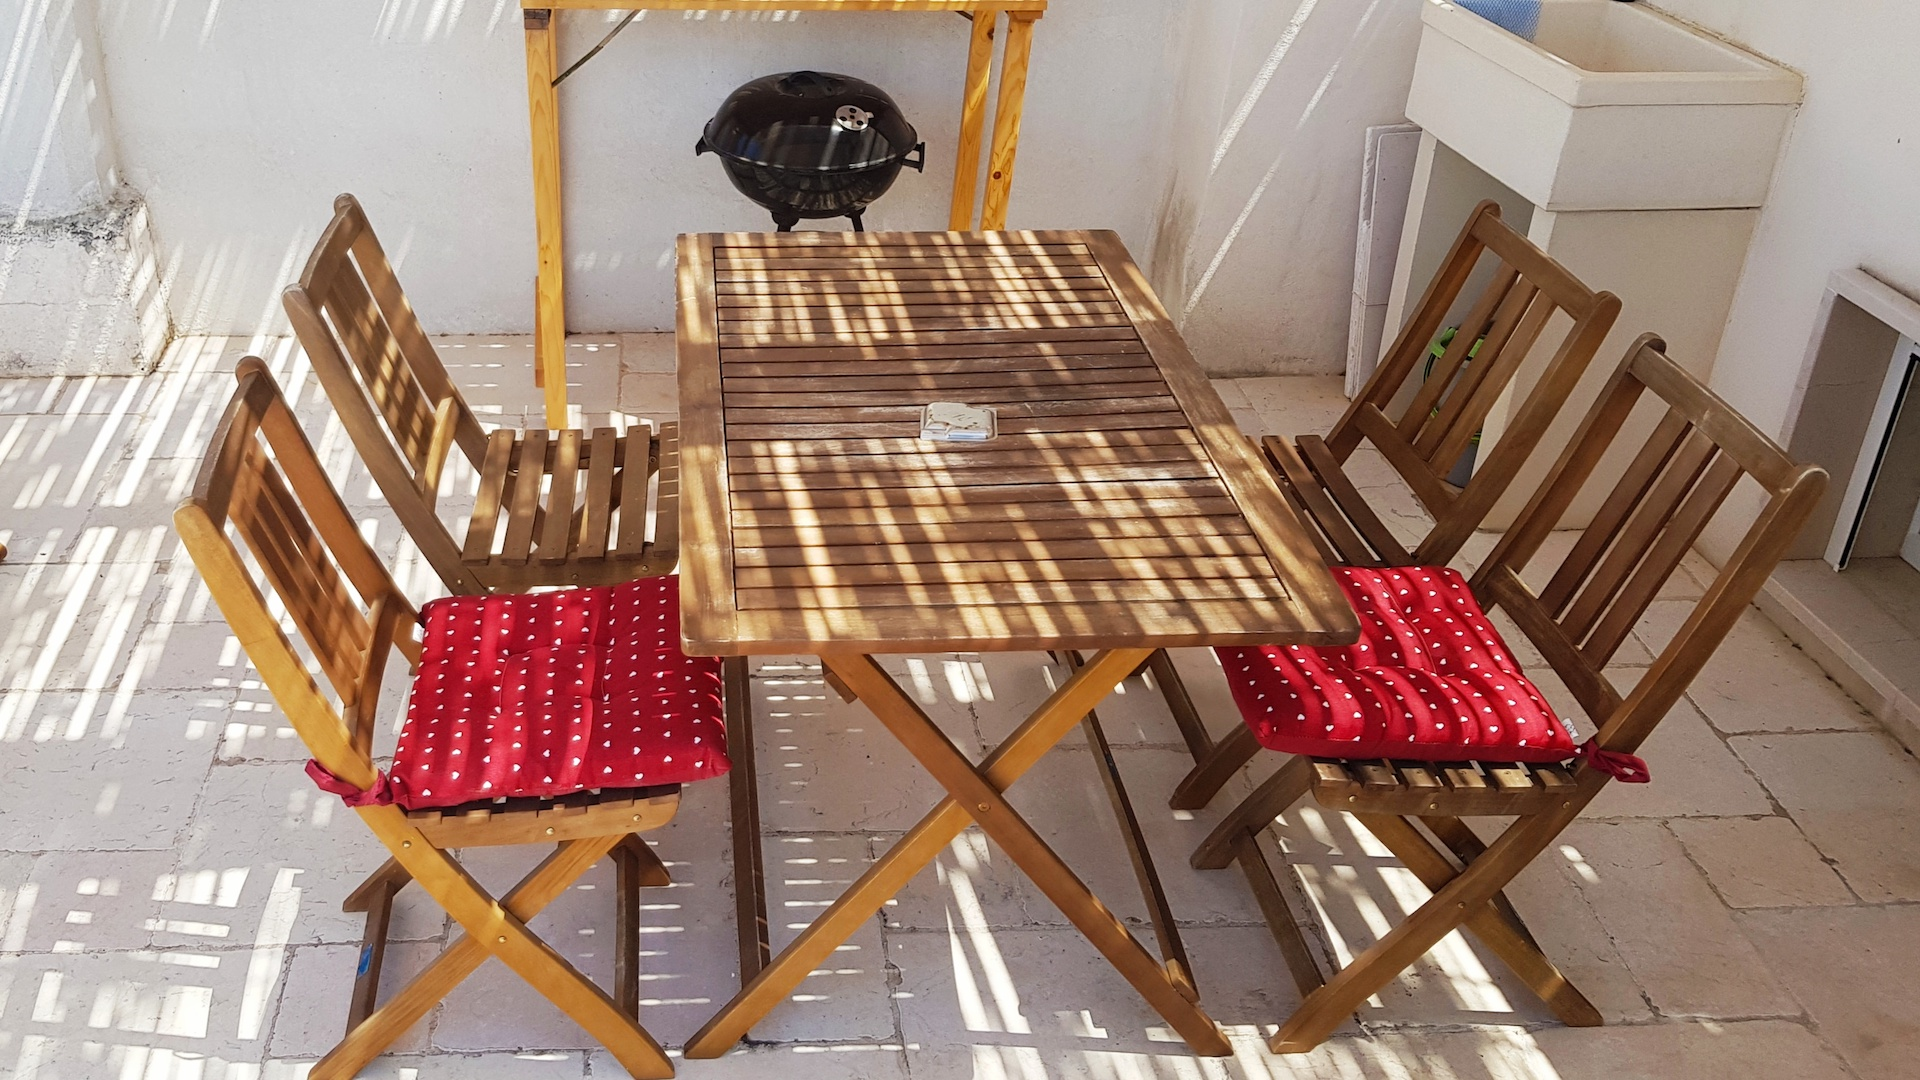 Dining facilities on the lower rooftop terrace at Casa Emma holiday rental home in Ostuni Puglia